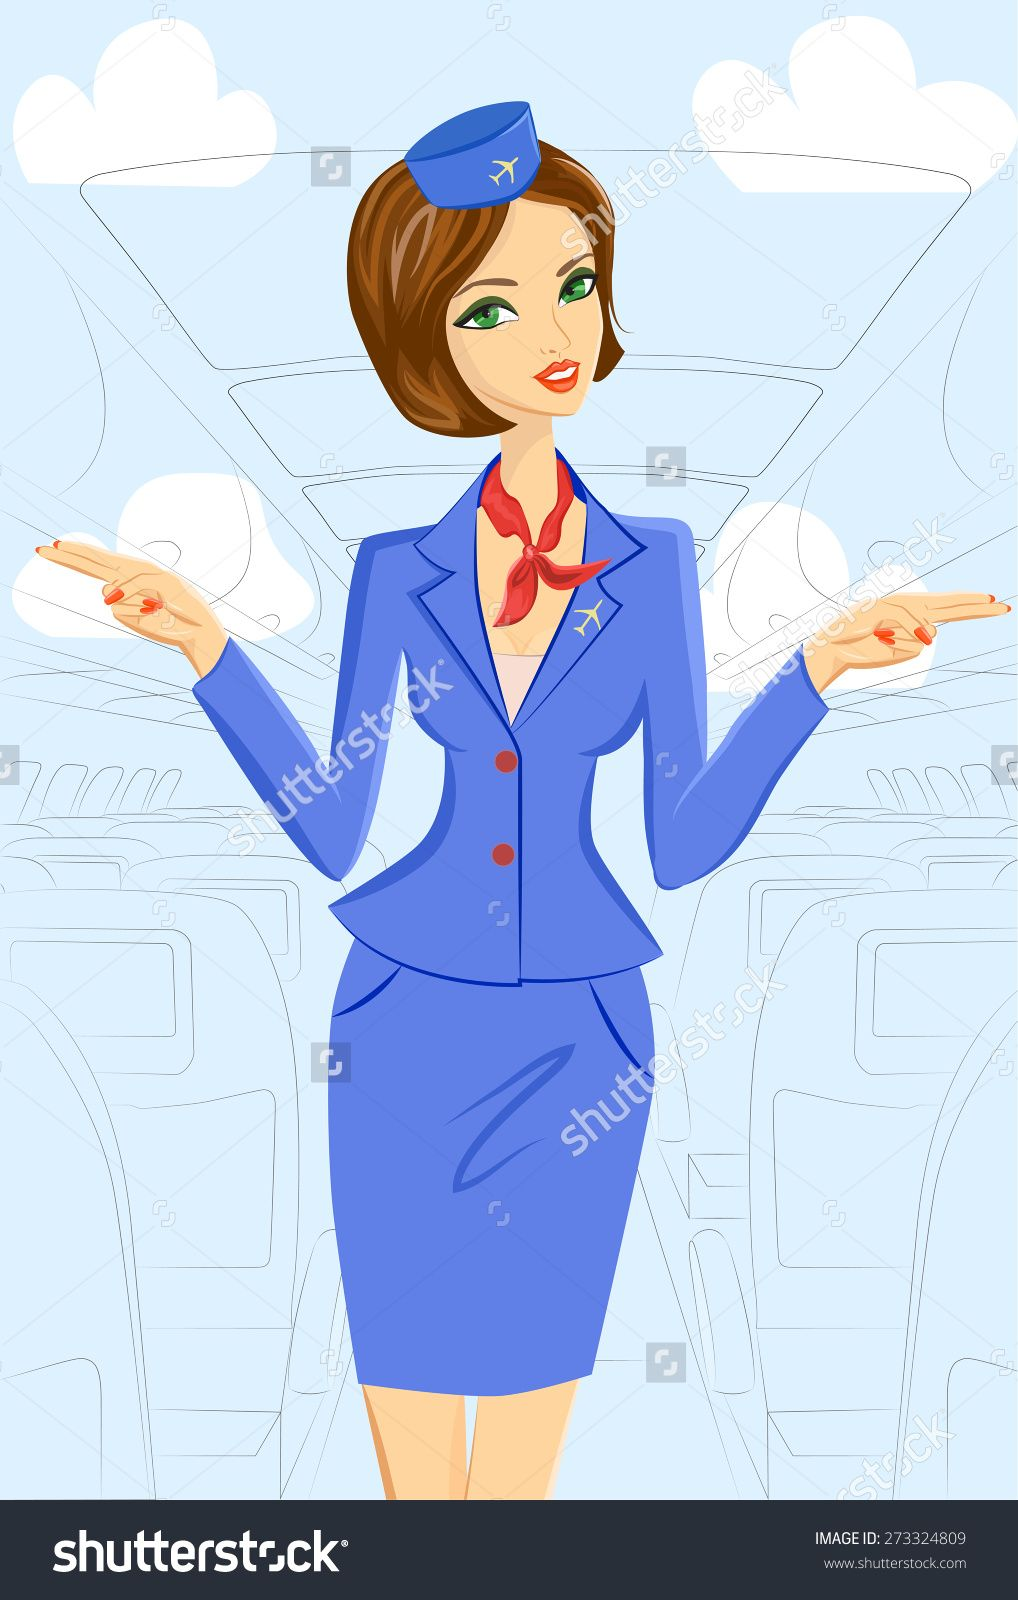 Air France Flight Attendant Cover Letter Cute Cheerful Female Flight Attendant In Blue And Red Uniform